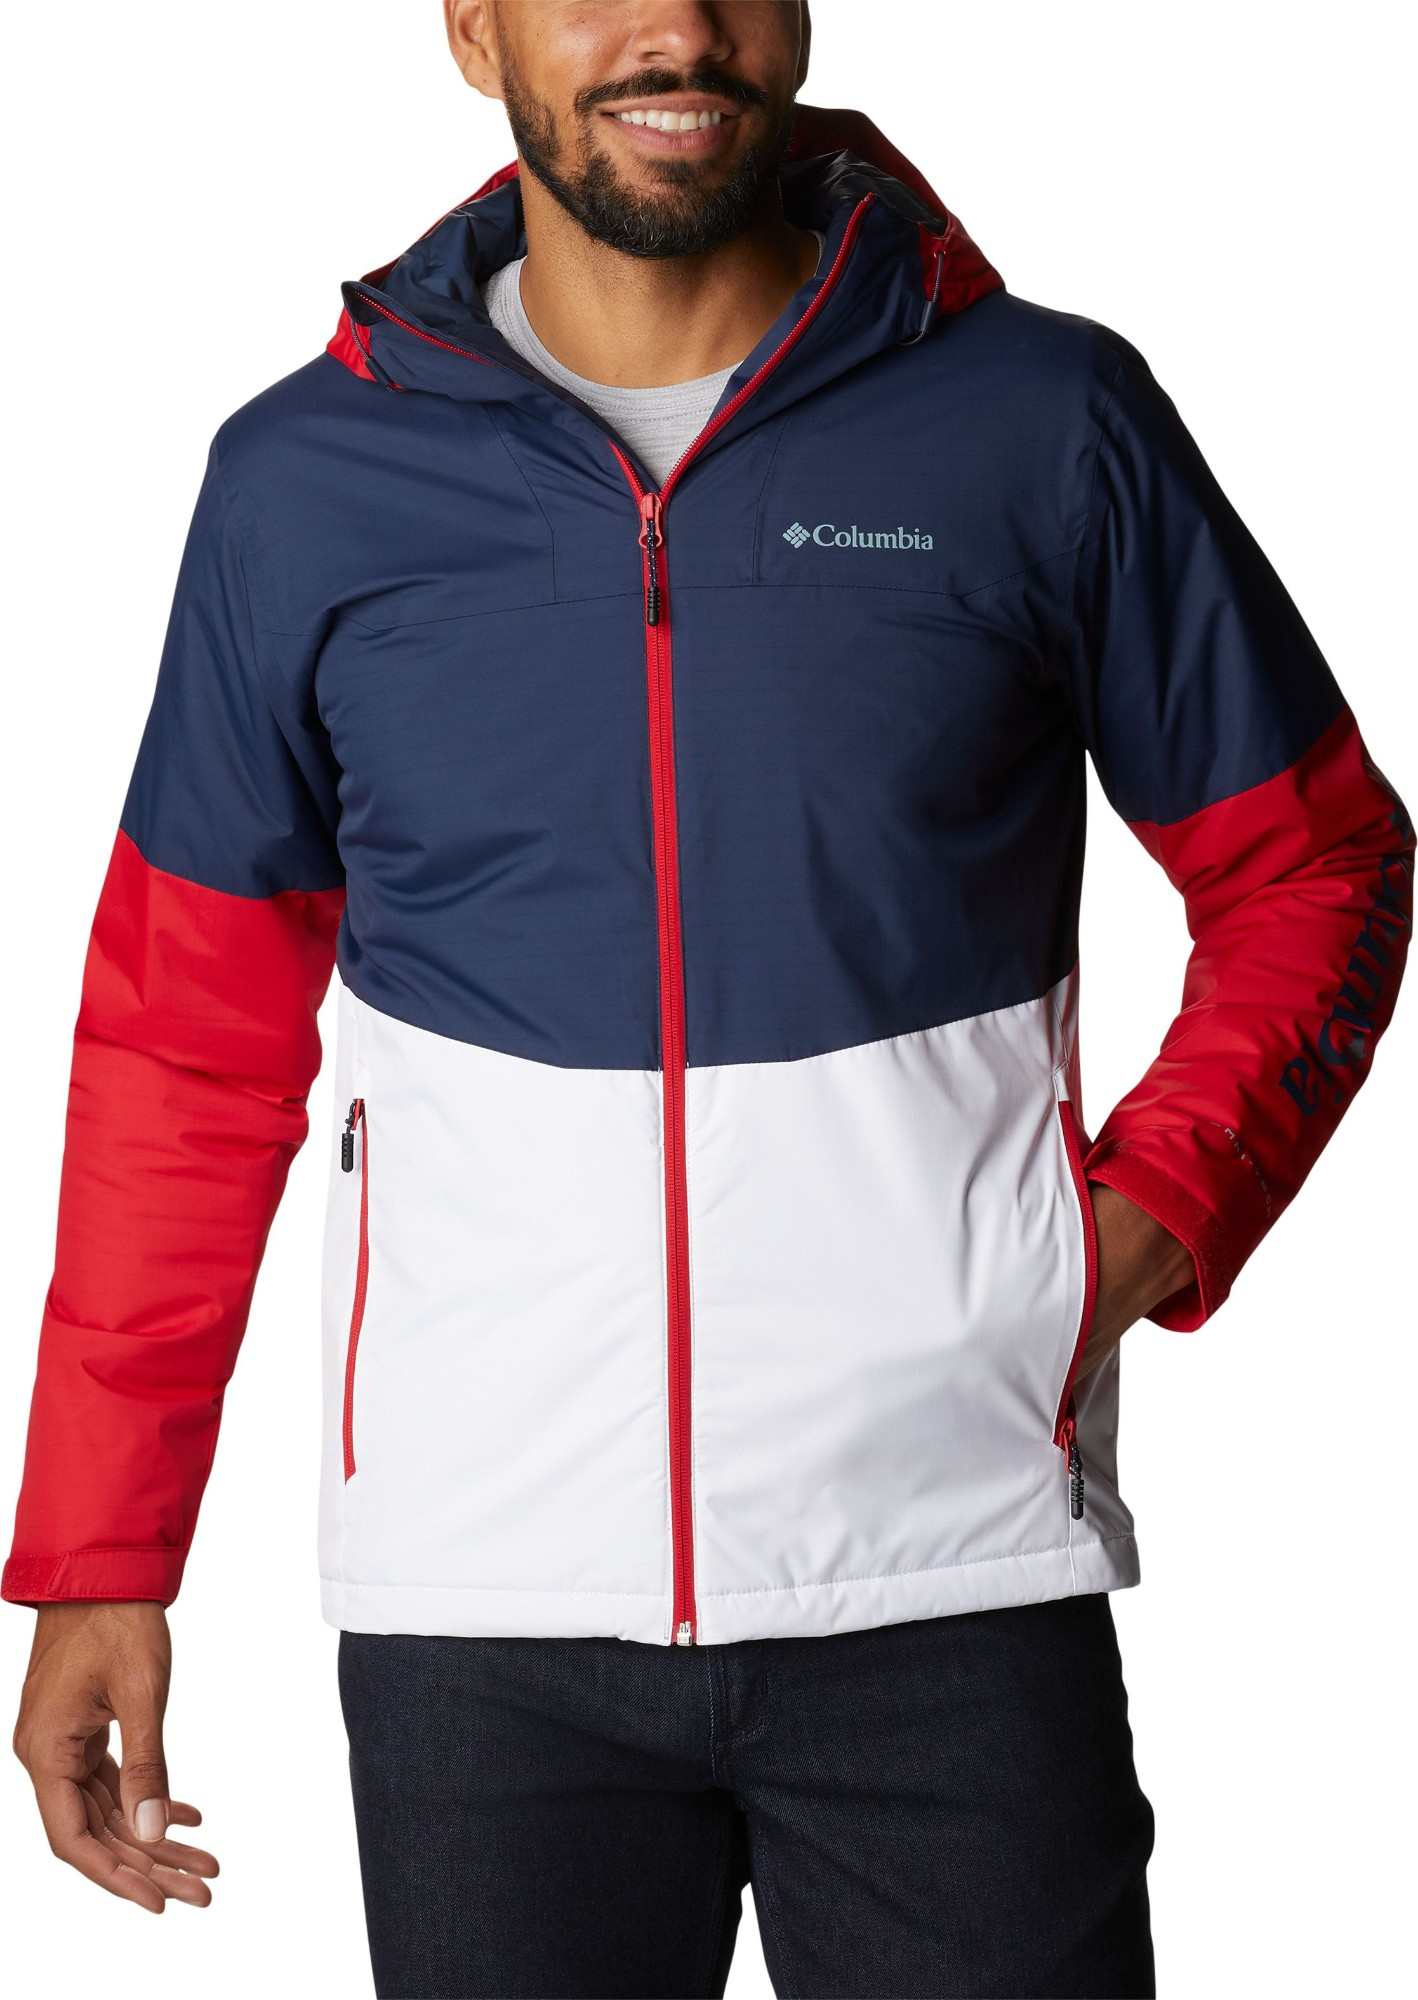 Columbia Point Park Insulated Jacket Men's Collegiate Navy/White/Mountain Red L